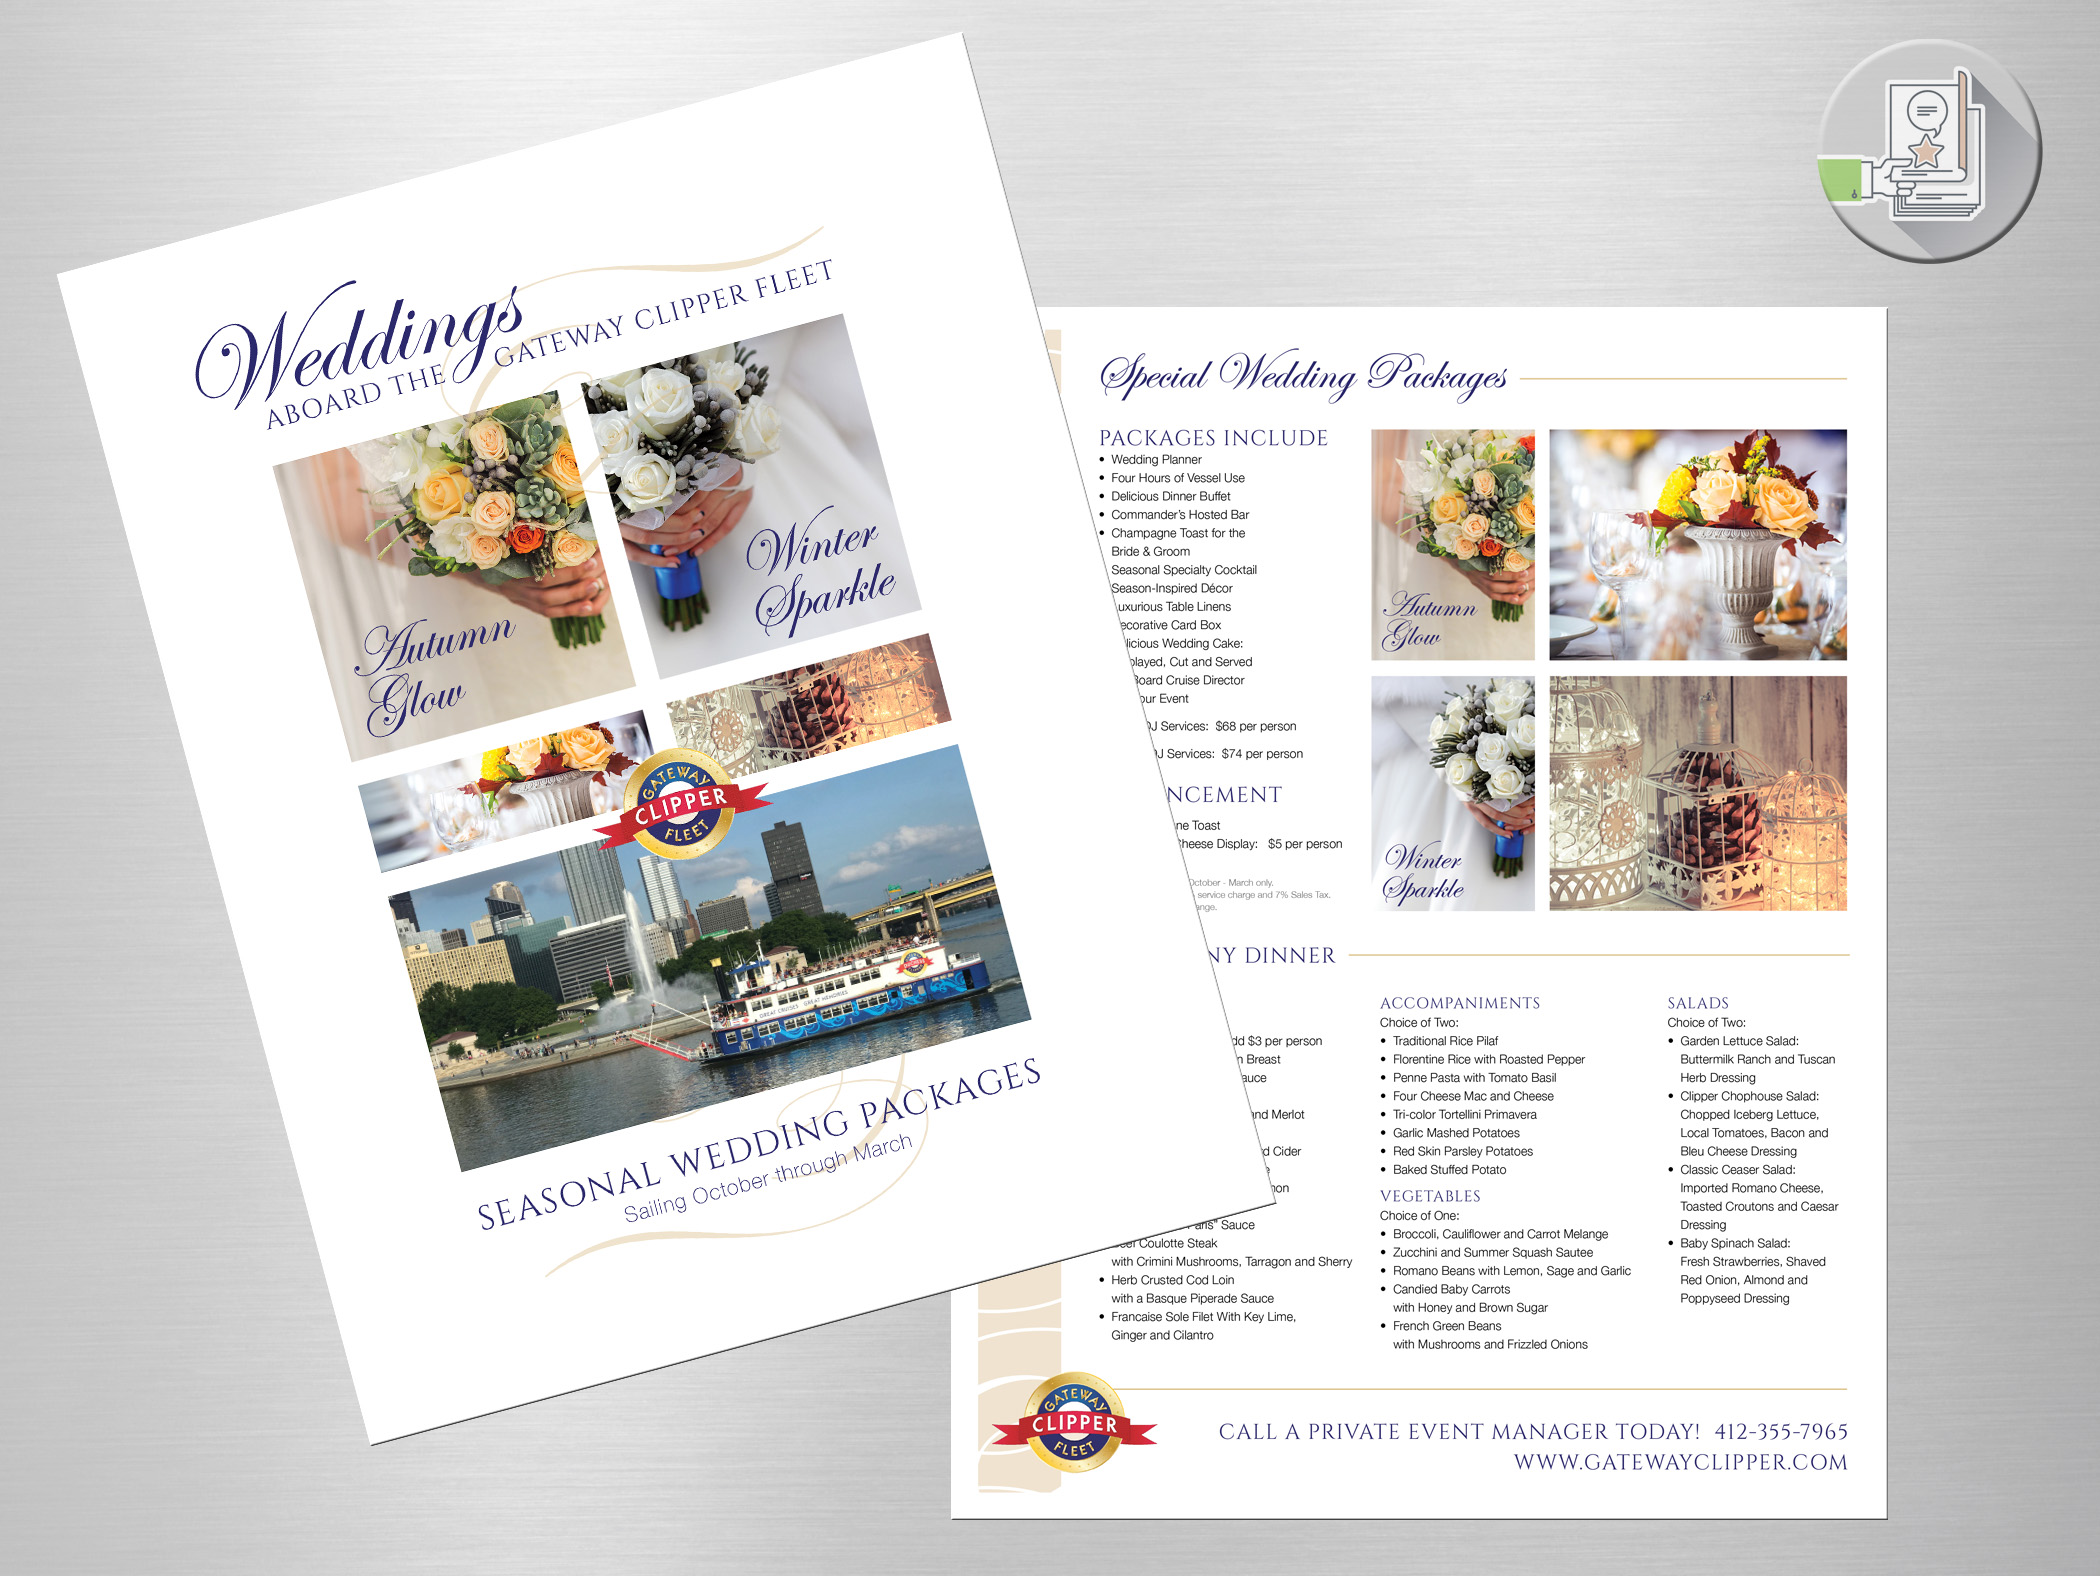 Gateway Clipper Fleet - Seasonal Wedding Flyer